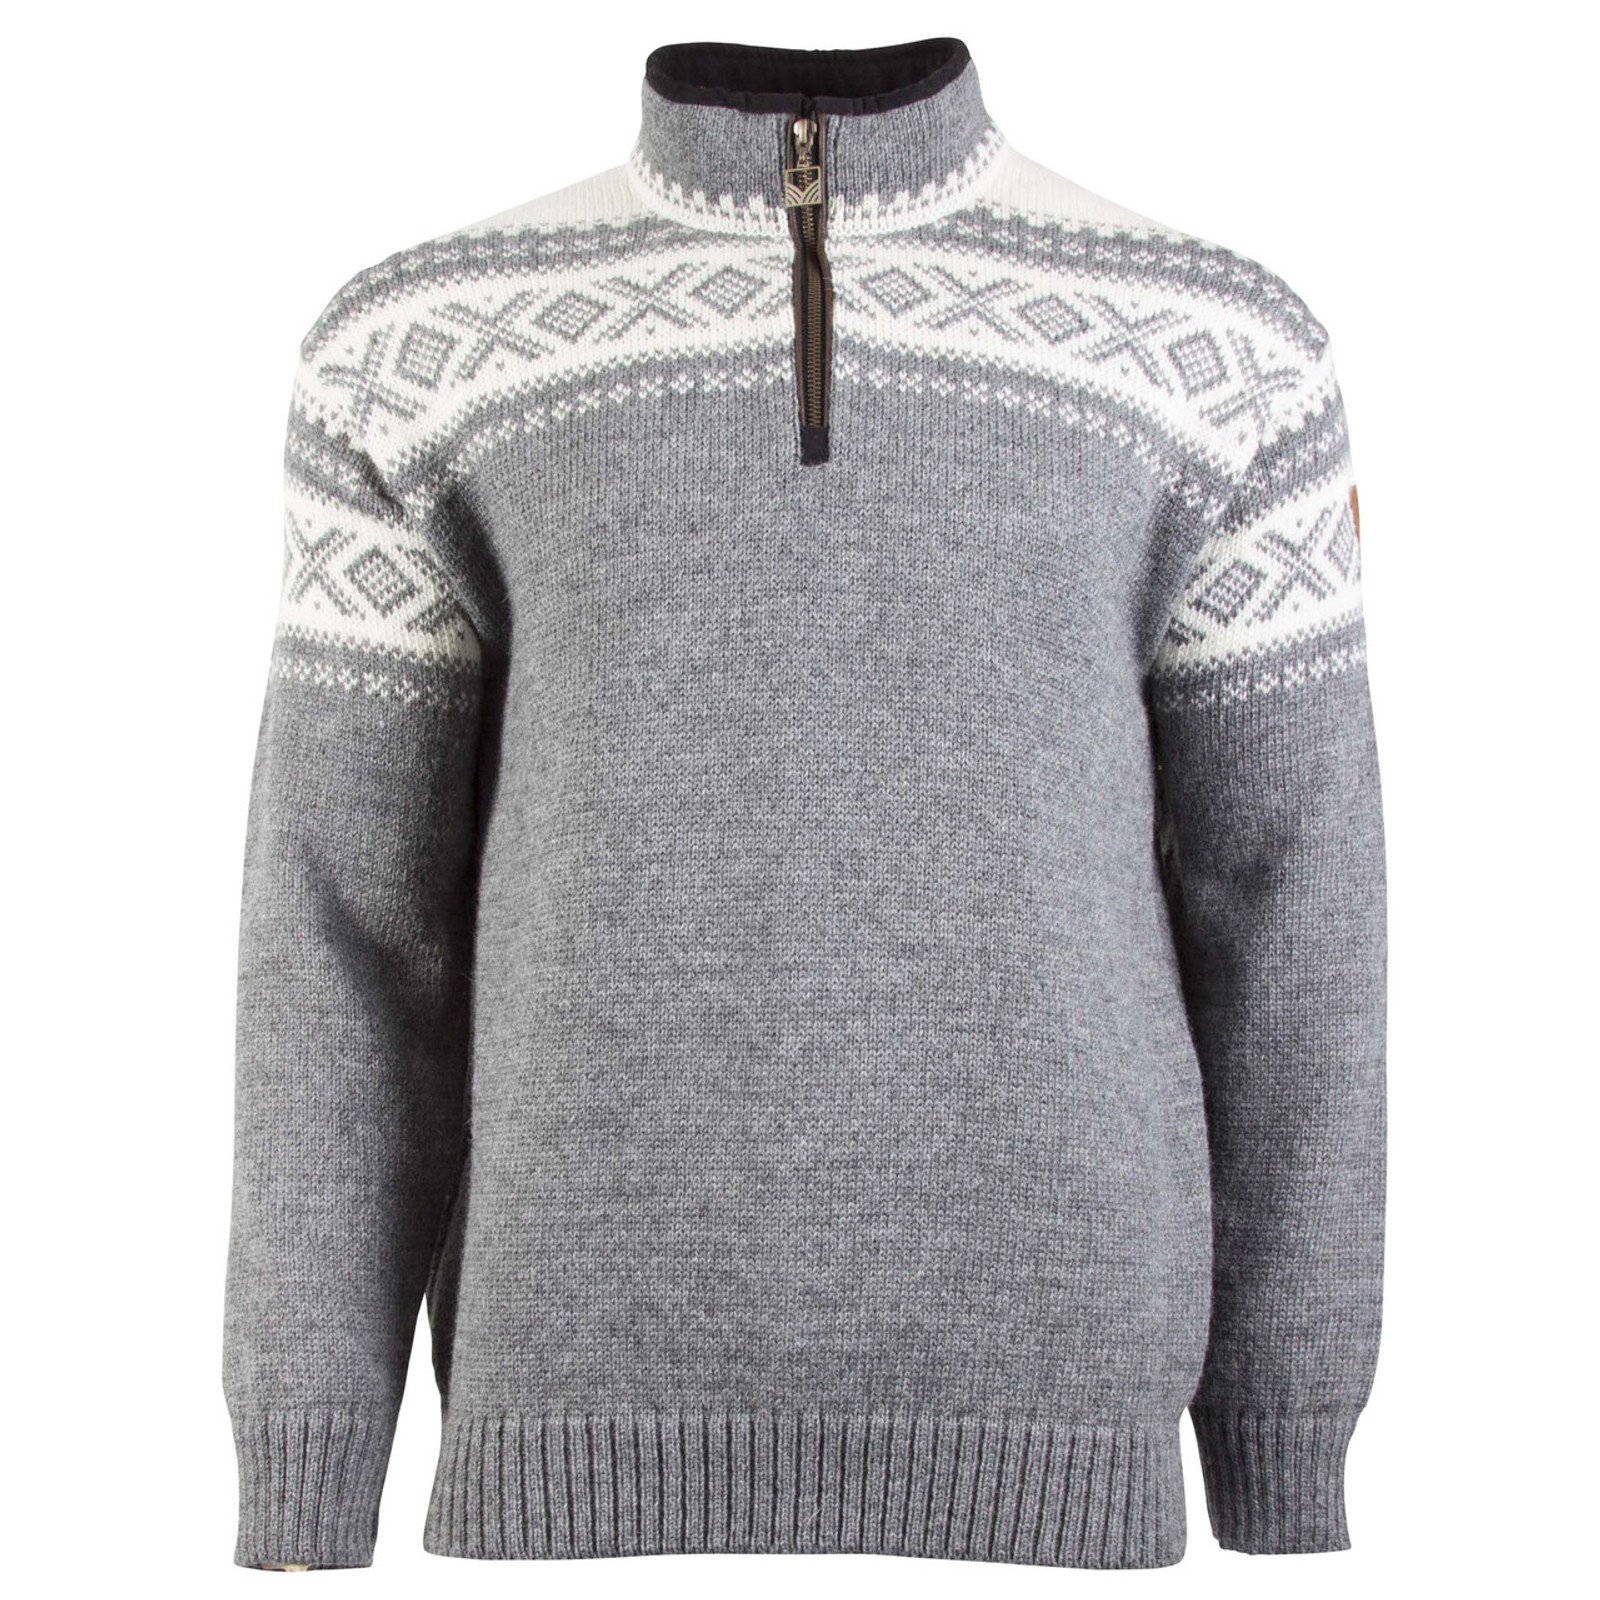 Dale of Norway, Cortina Half Zip sweater, Unisex, in Smoke/Off-White, 93561-E